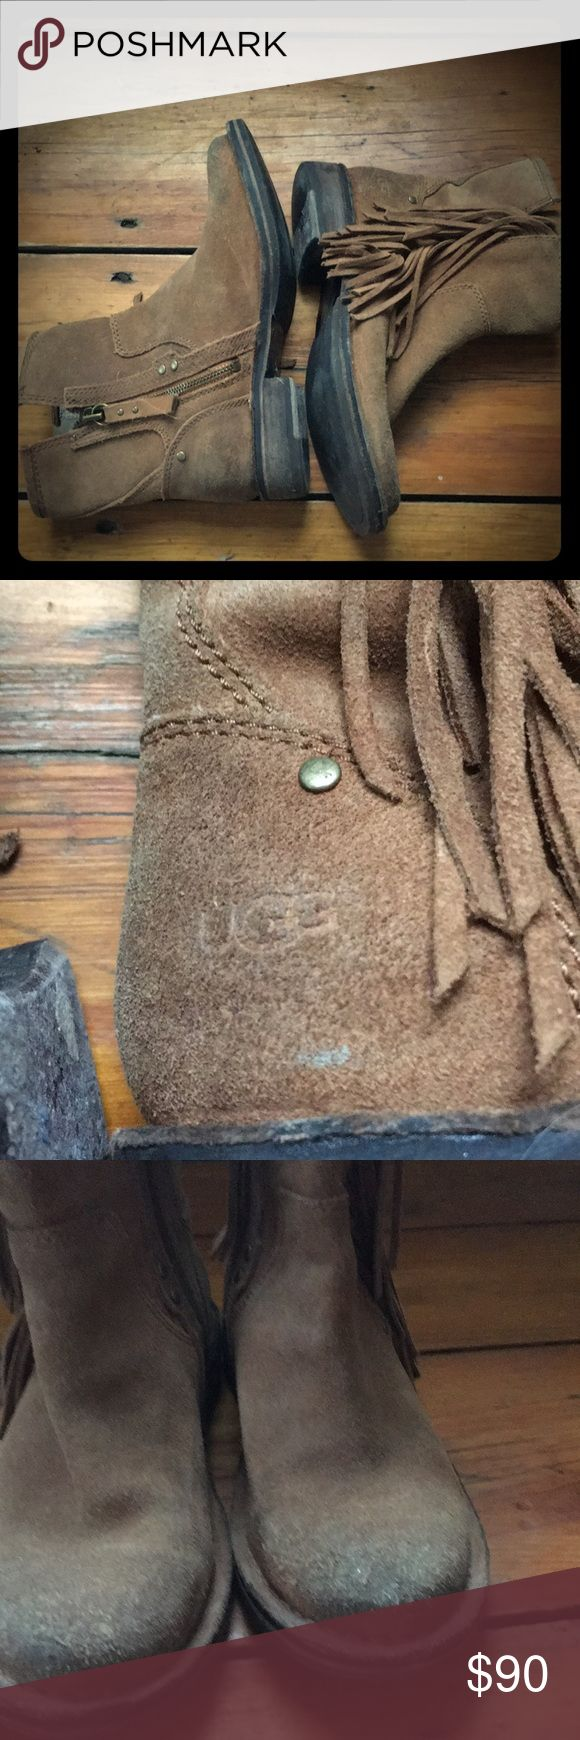 UGG suede fringe ankle bootie EUC bootie tag says EU size 36 UGG Shoes Ankle Boots & Booties